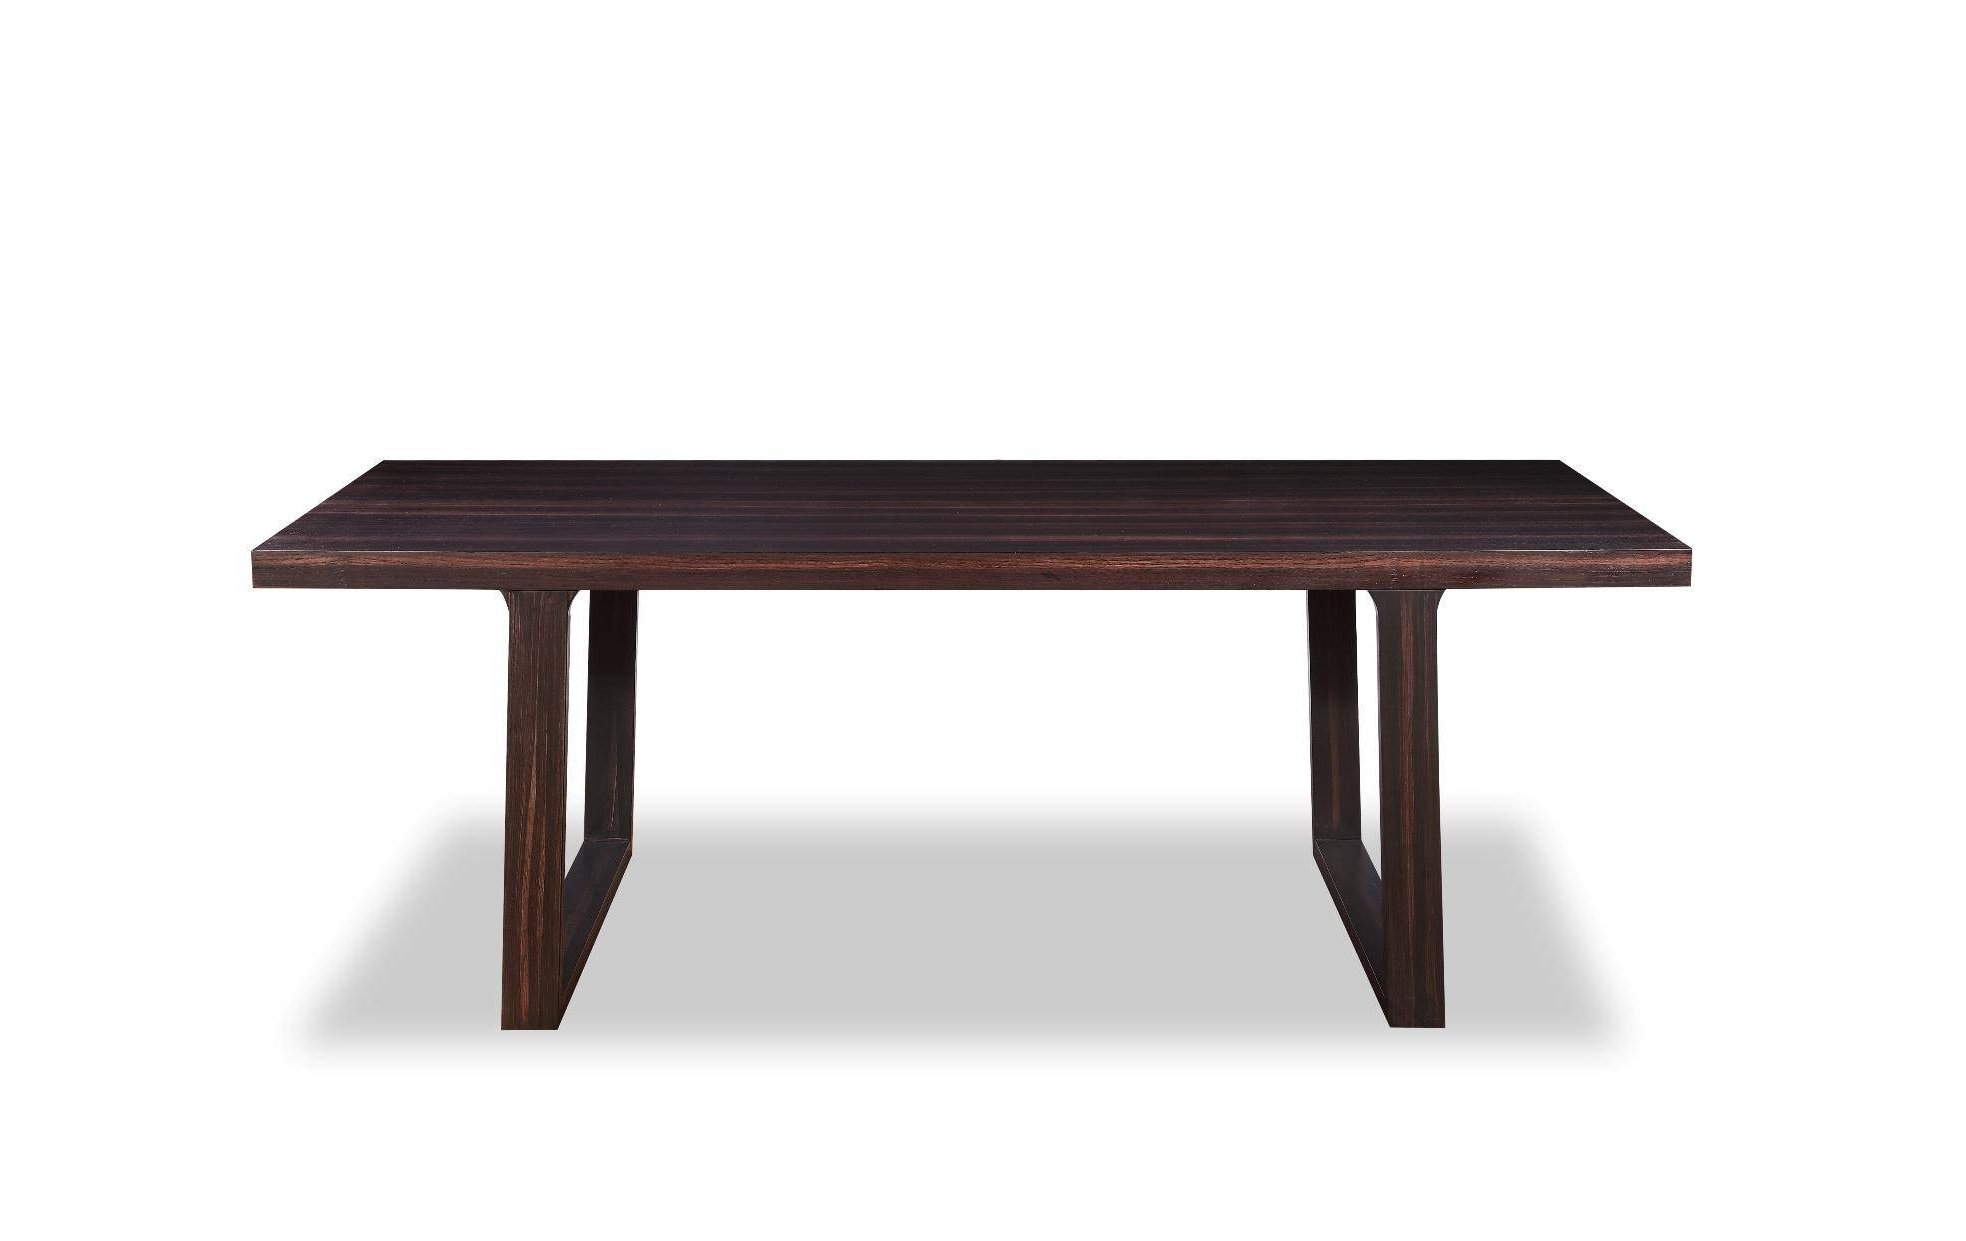 Vig A&x Caligari Oak Veneer Rectangular Dining Table Throughout Most Current Contemporary Rectangular Dining Tables (View 23 of 25)